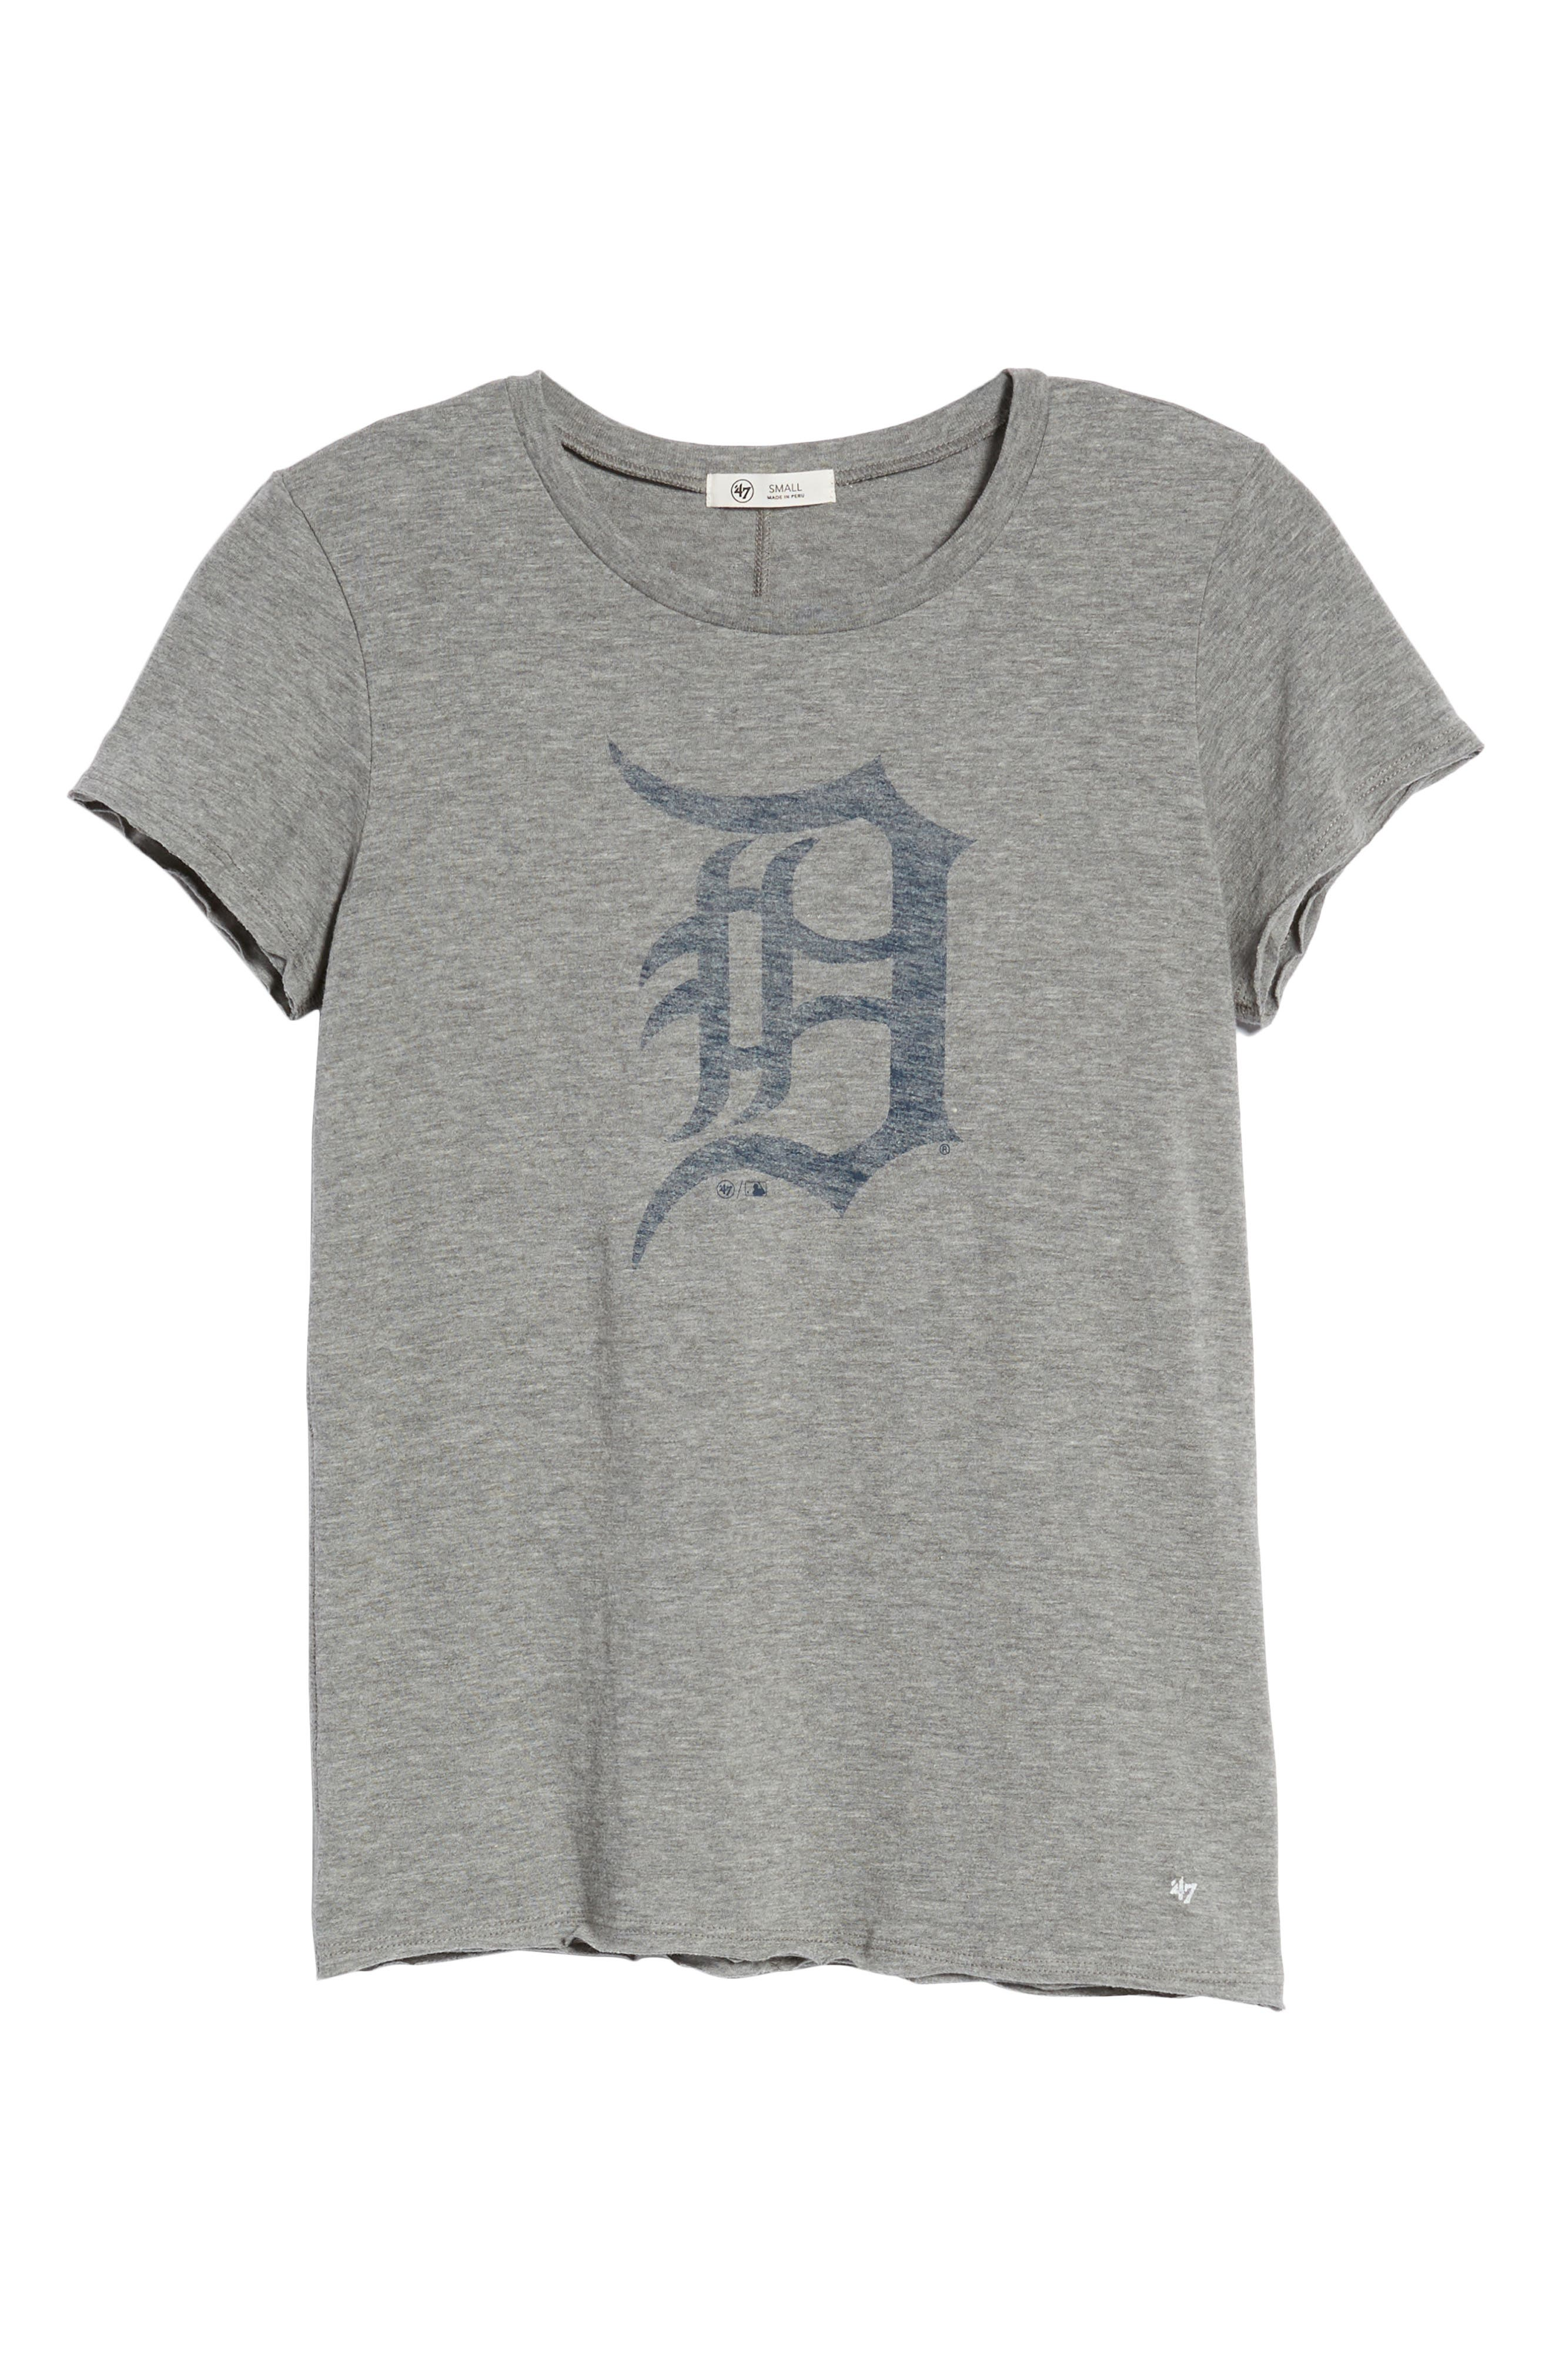 Detroit Tigers Fader Letter Tee,                             Alternate thumbnail 7, color,                             021